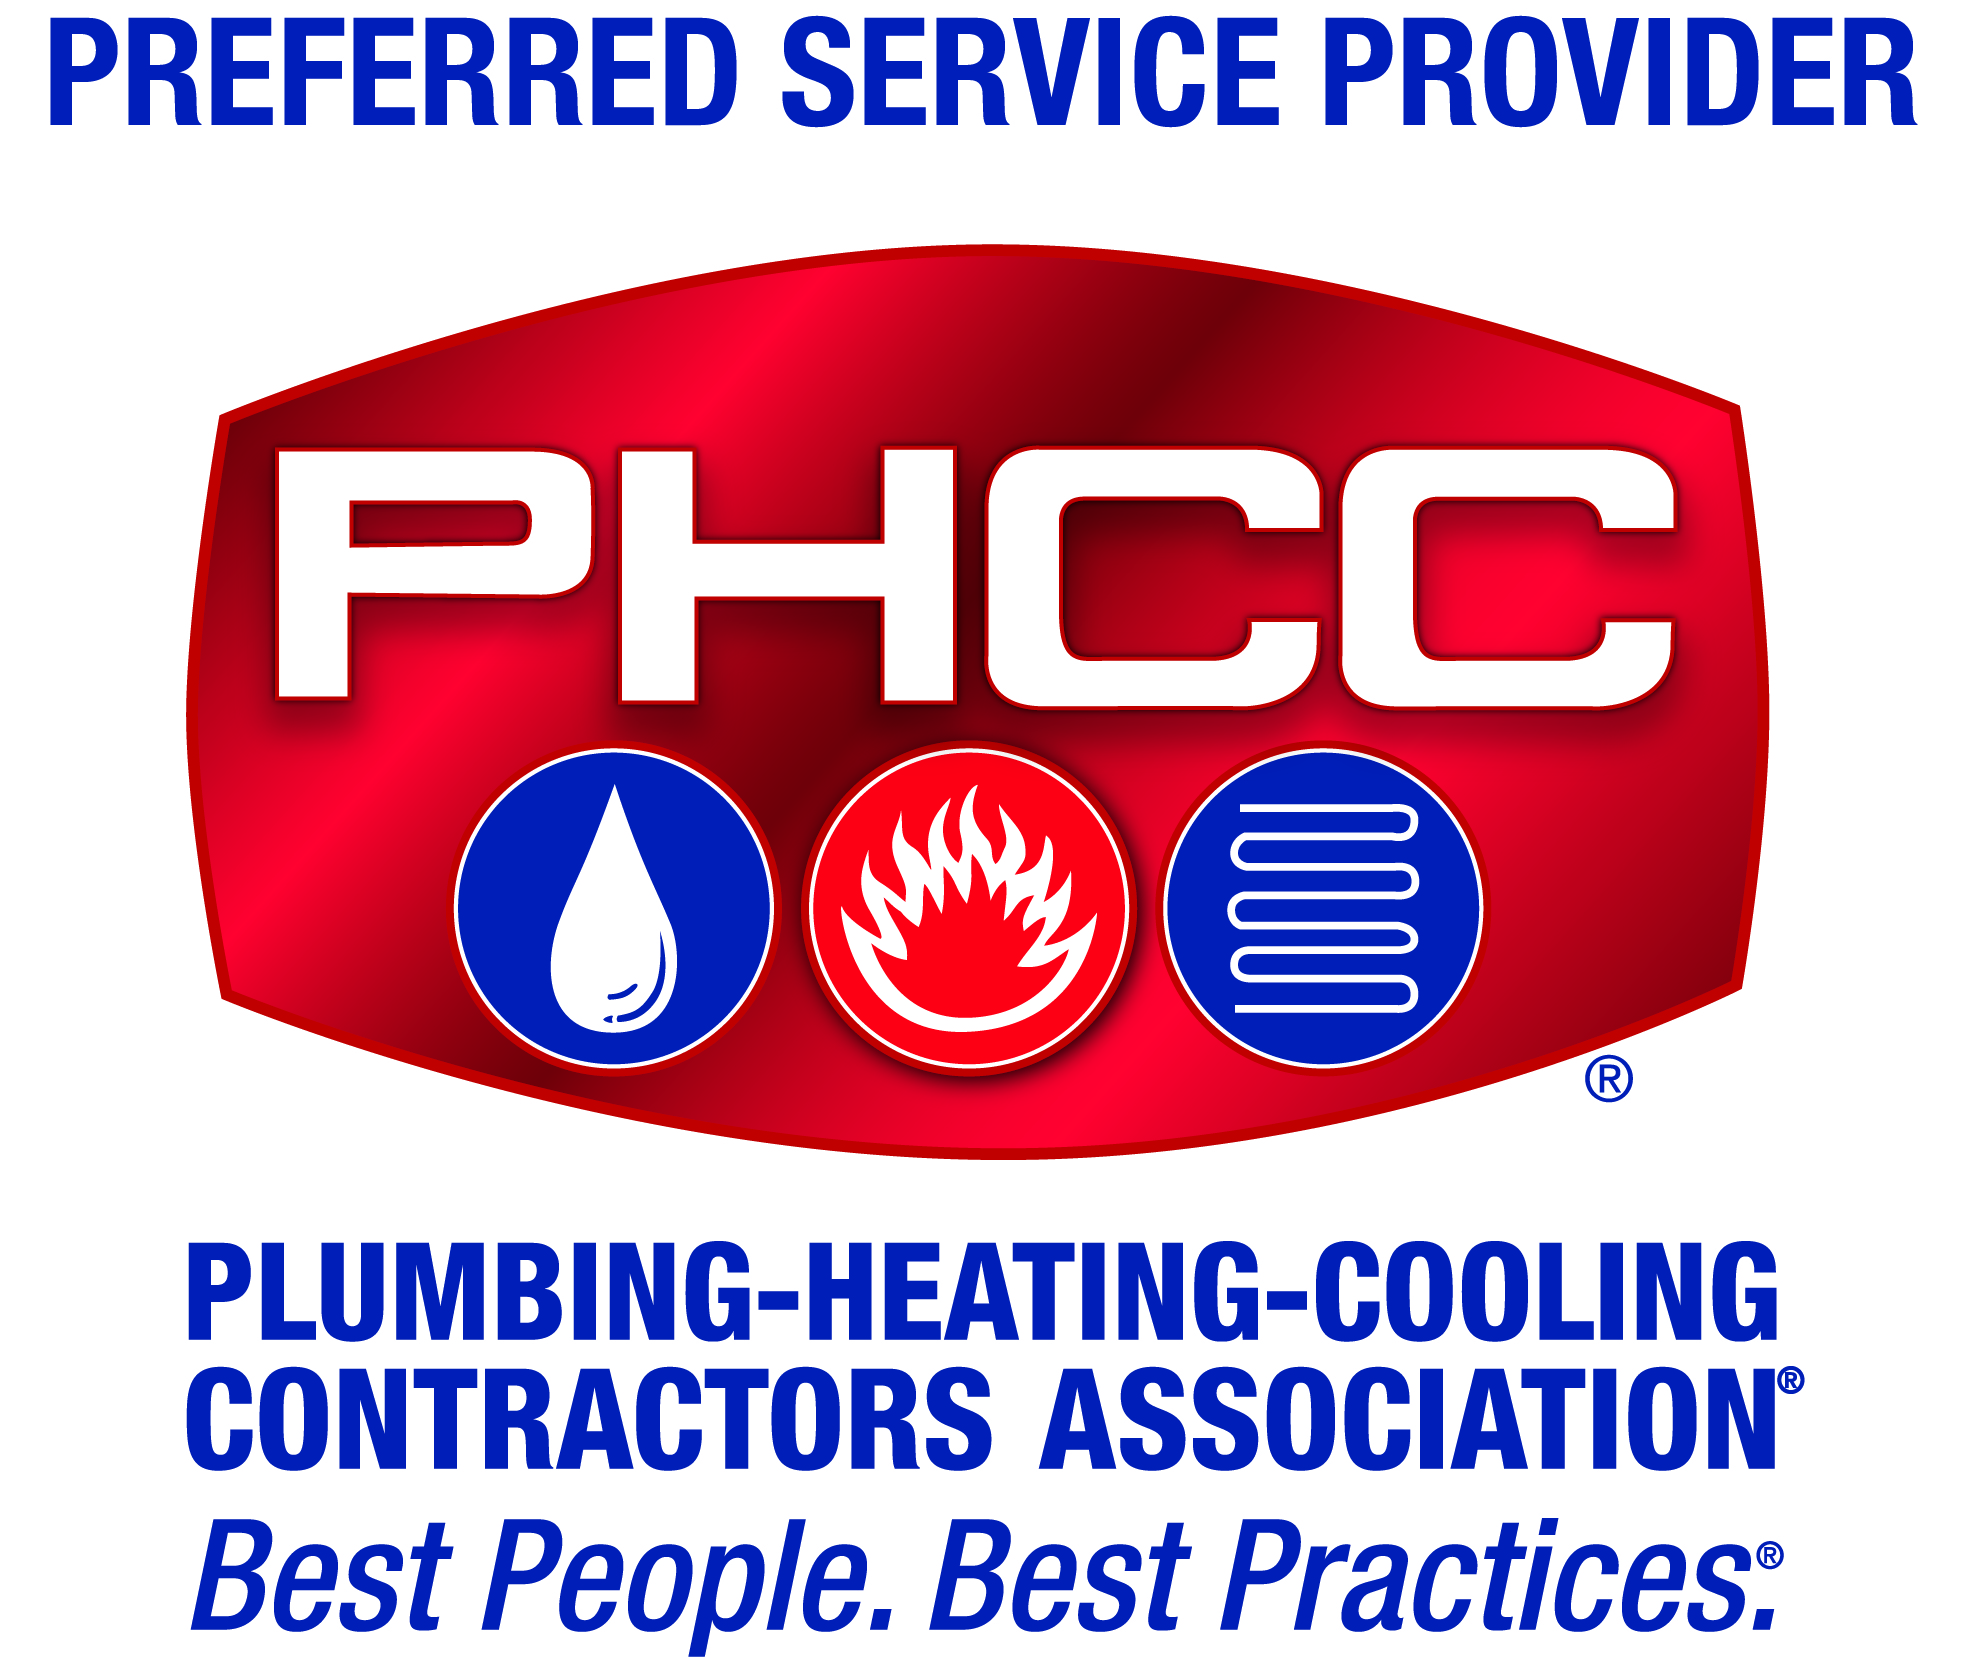 Plumbing Heating Cooling Contractors